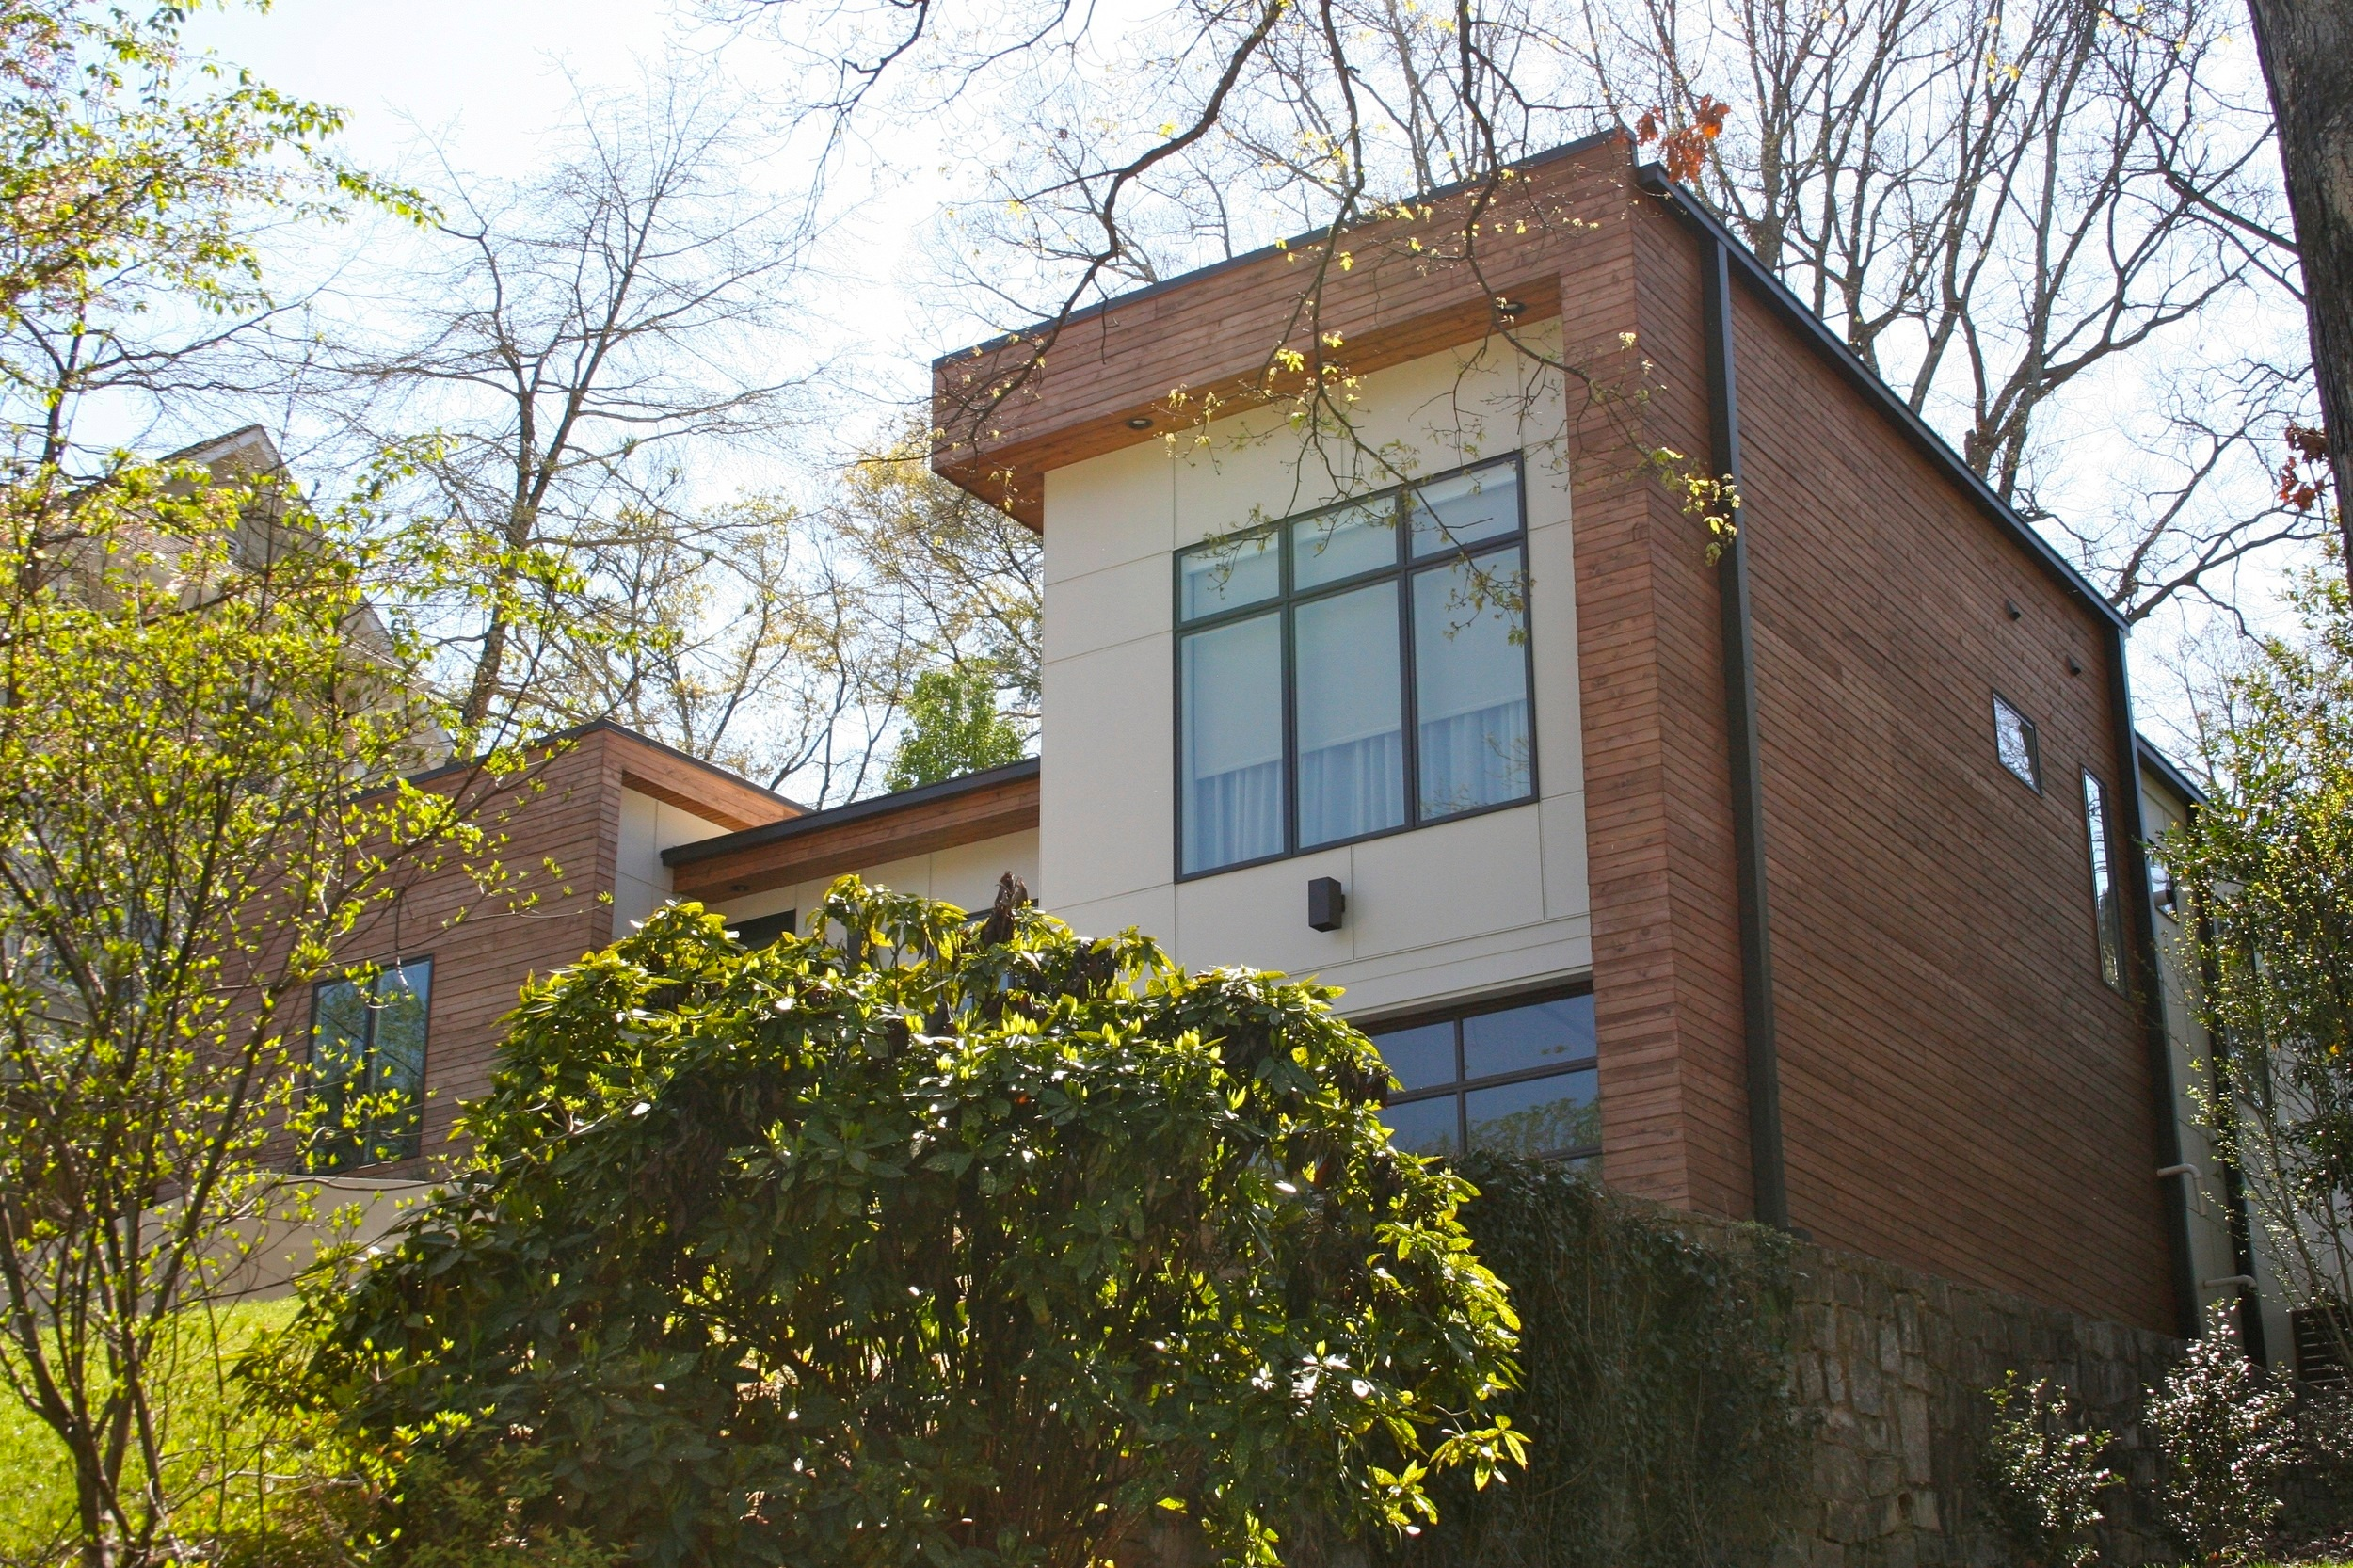 Complete renovation of 1950s 2 bedroom 1 bath home into a modern 3 bedroom and 2 1/2 bath home. The existing walls and foundation remained but the roof and exterior materials were completely reworked. Located in the Morningside neighborhood of Midtown Atlanta.